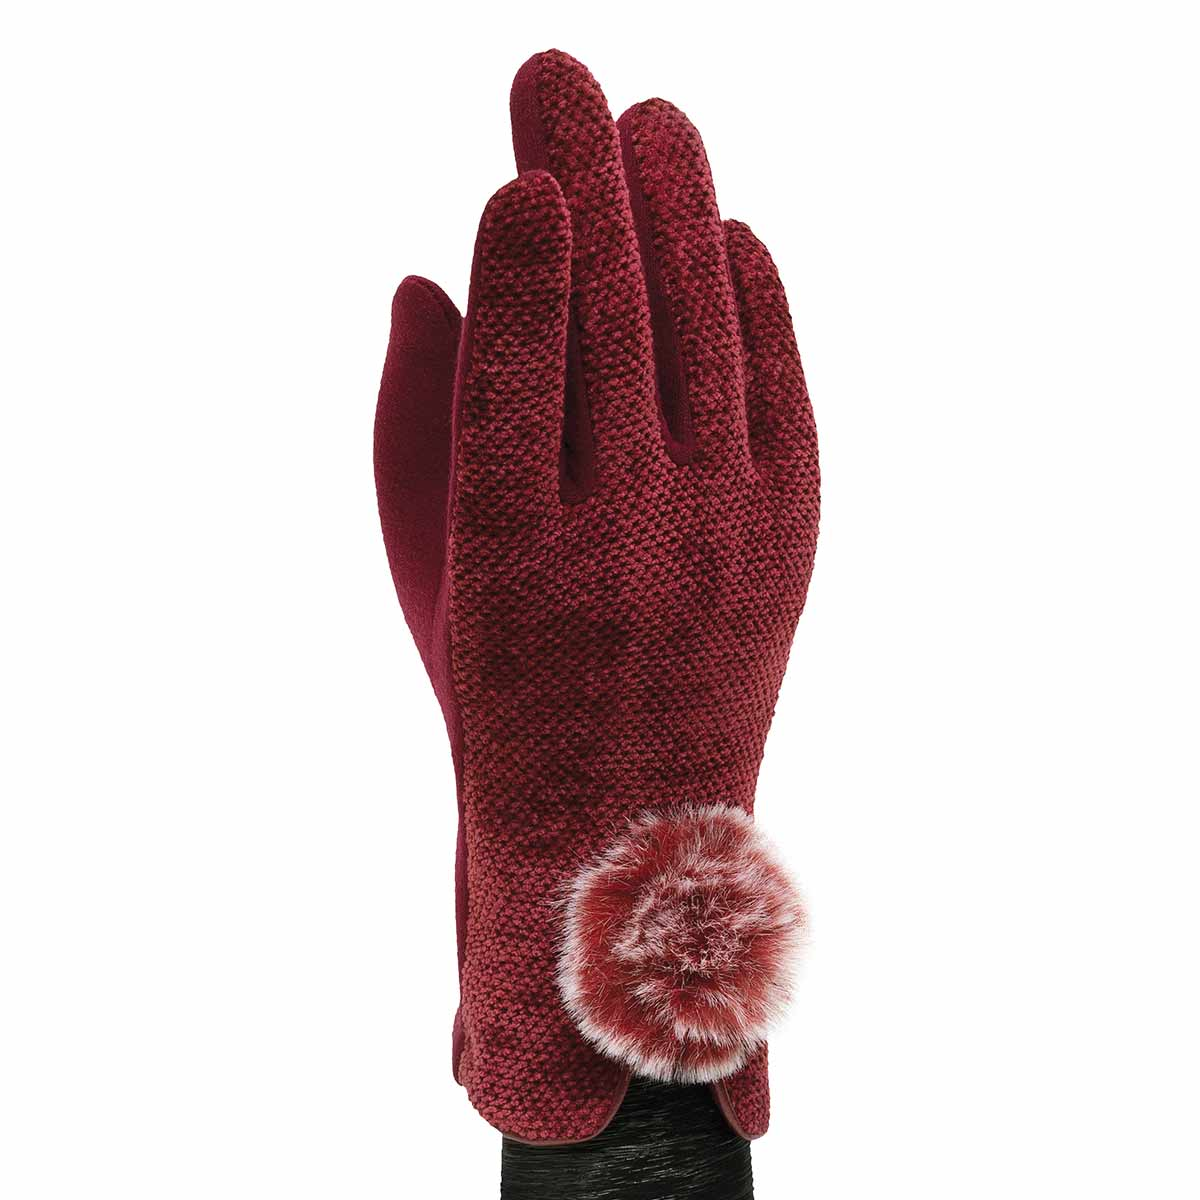 Burgundy Velour Gloves with Fur Pom Pom